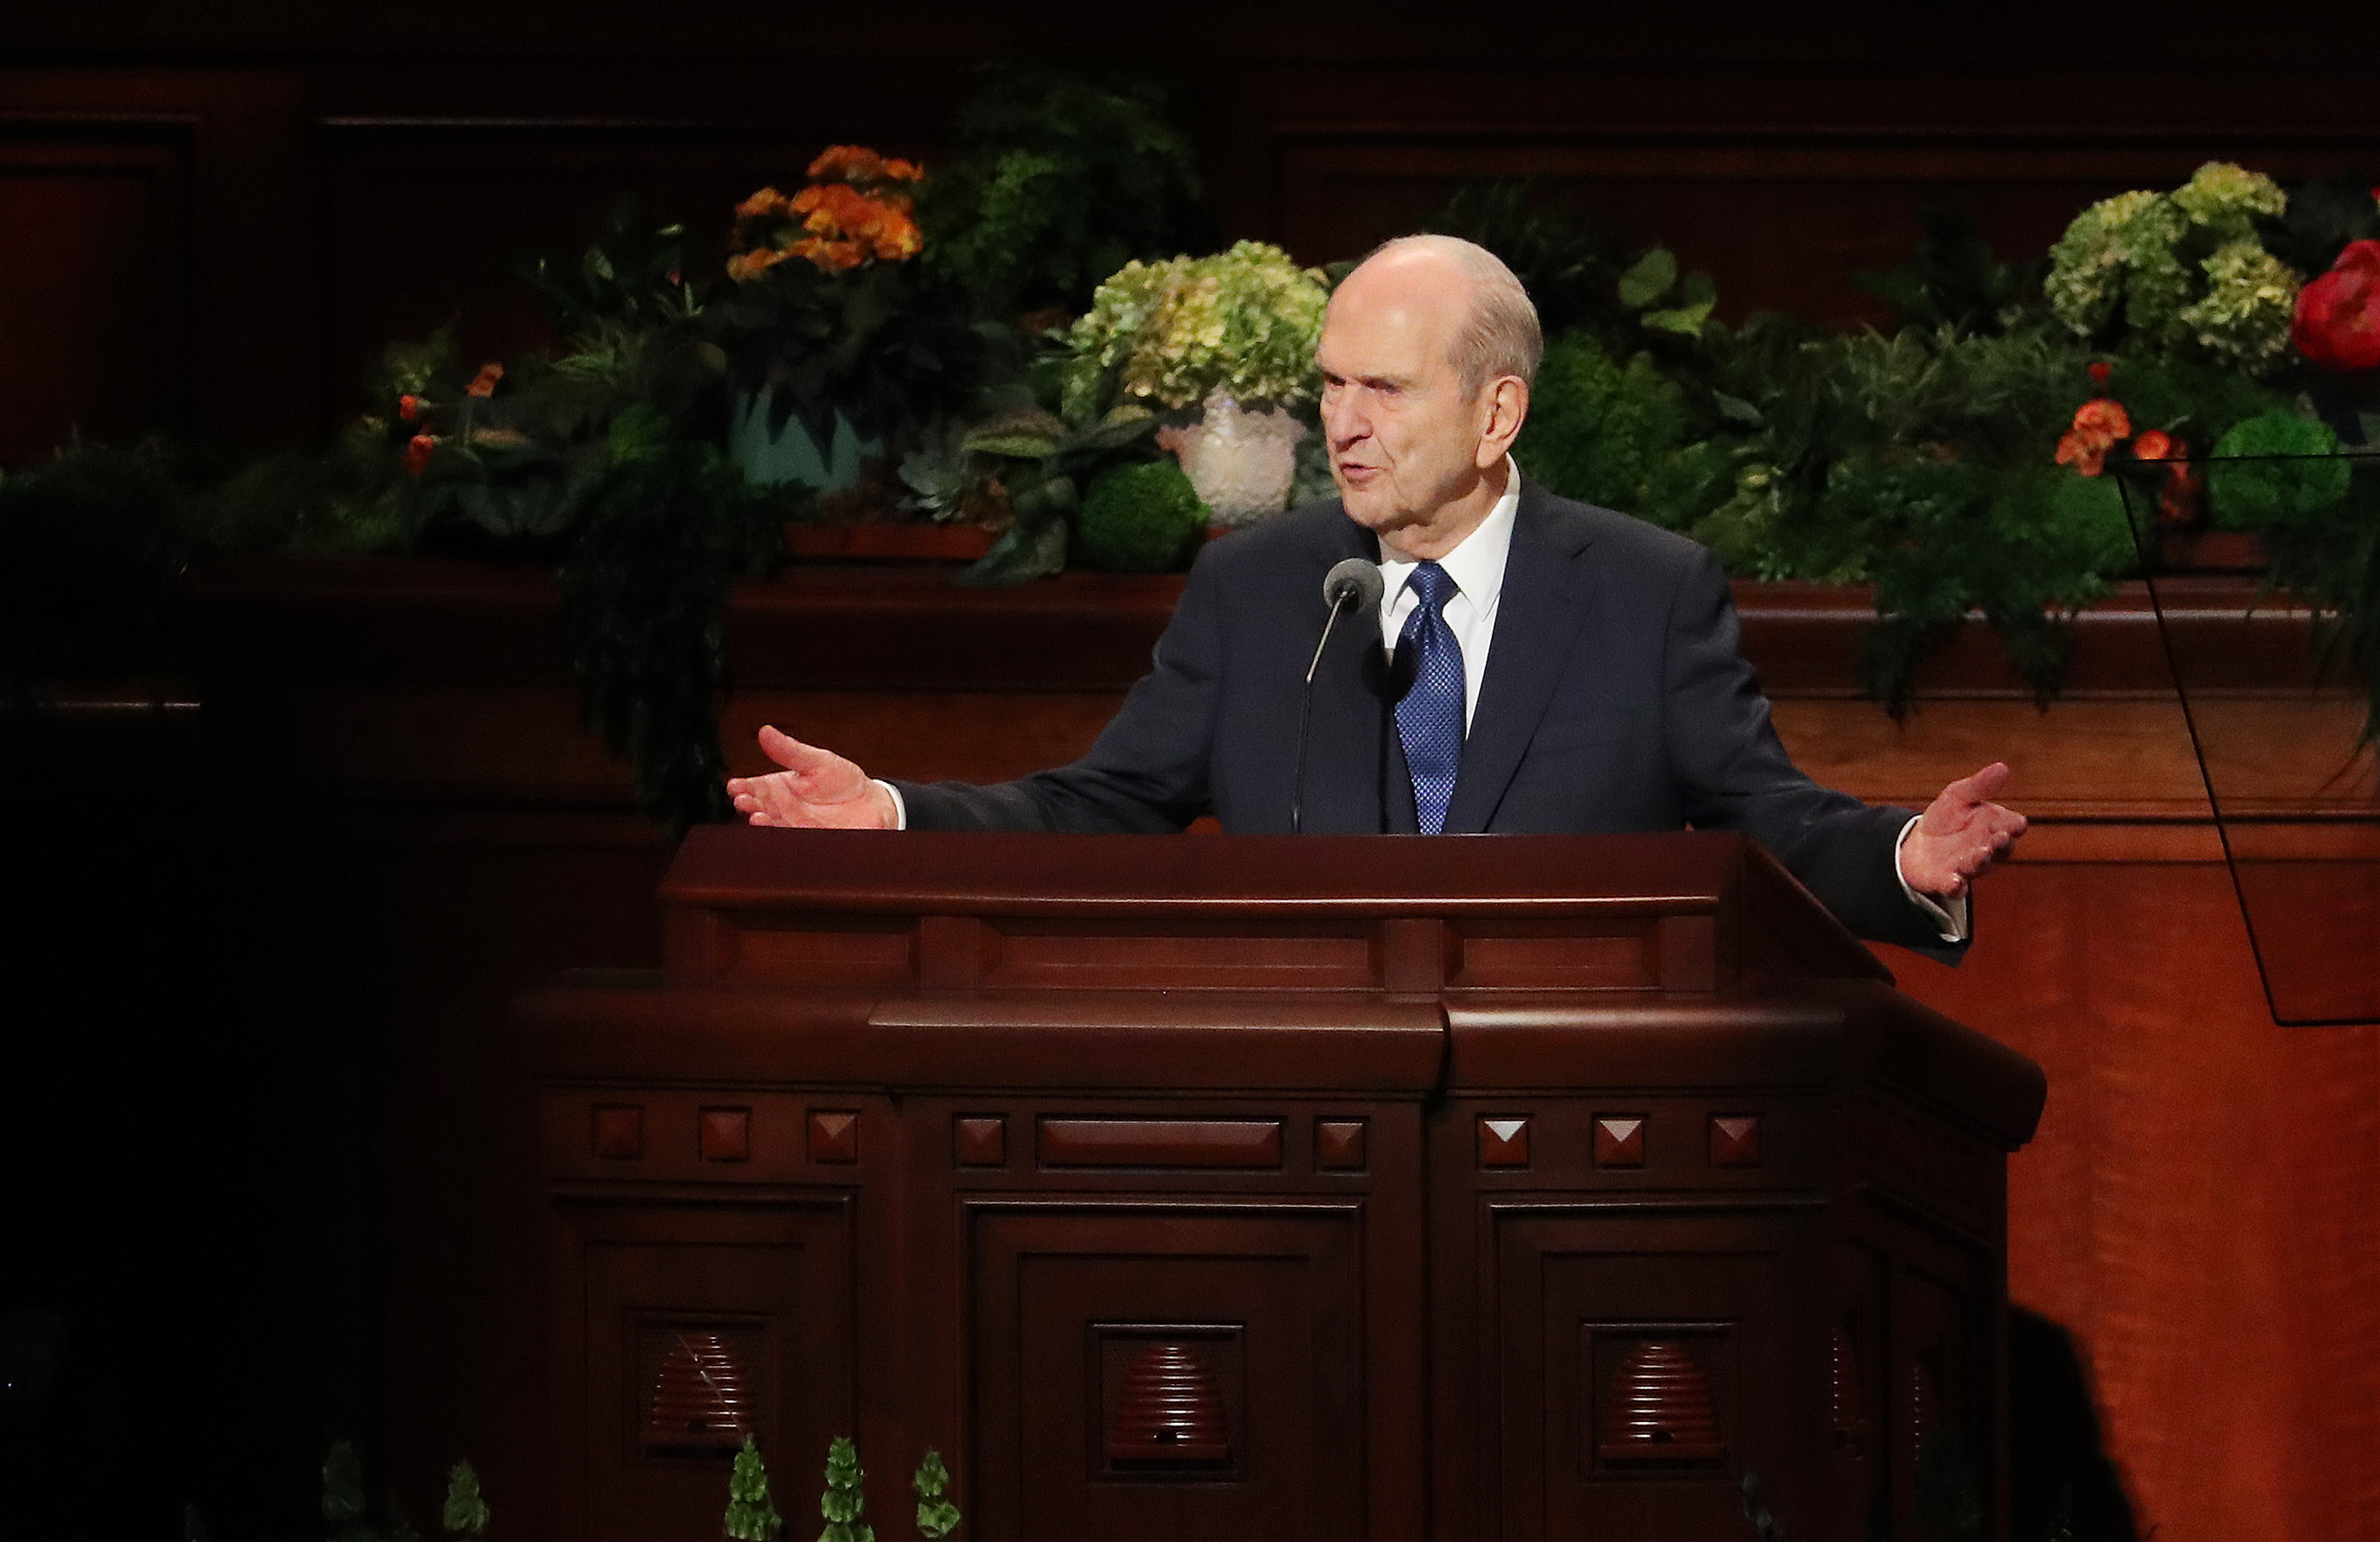 President Russell M. Nelson of The Church of Jesus Christ of Latter-day Saints, speaks during the 189th Annual General Conference of The Church of Jesus Christ of Latter-day Saints in the Conference Center in Salt Lake City on Sunday, April 7, 2019.